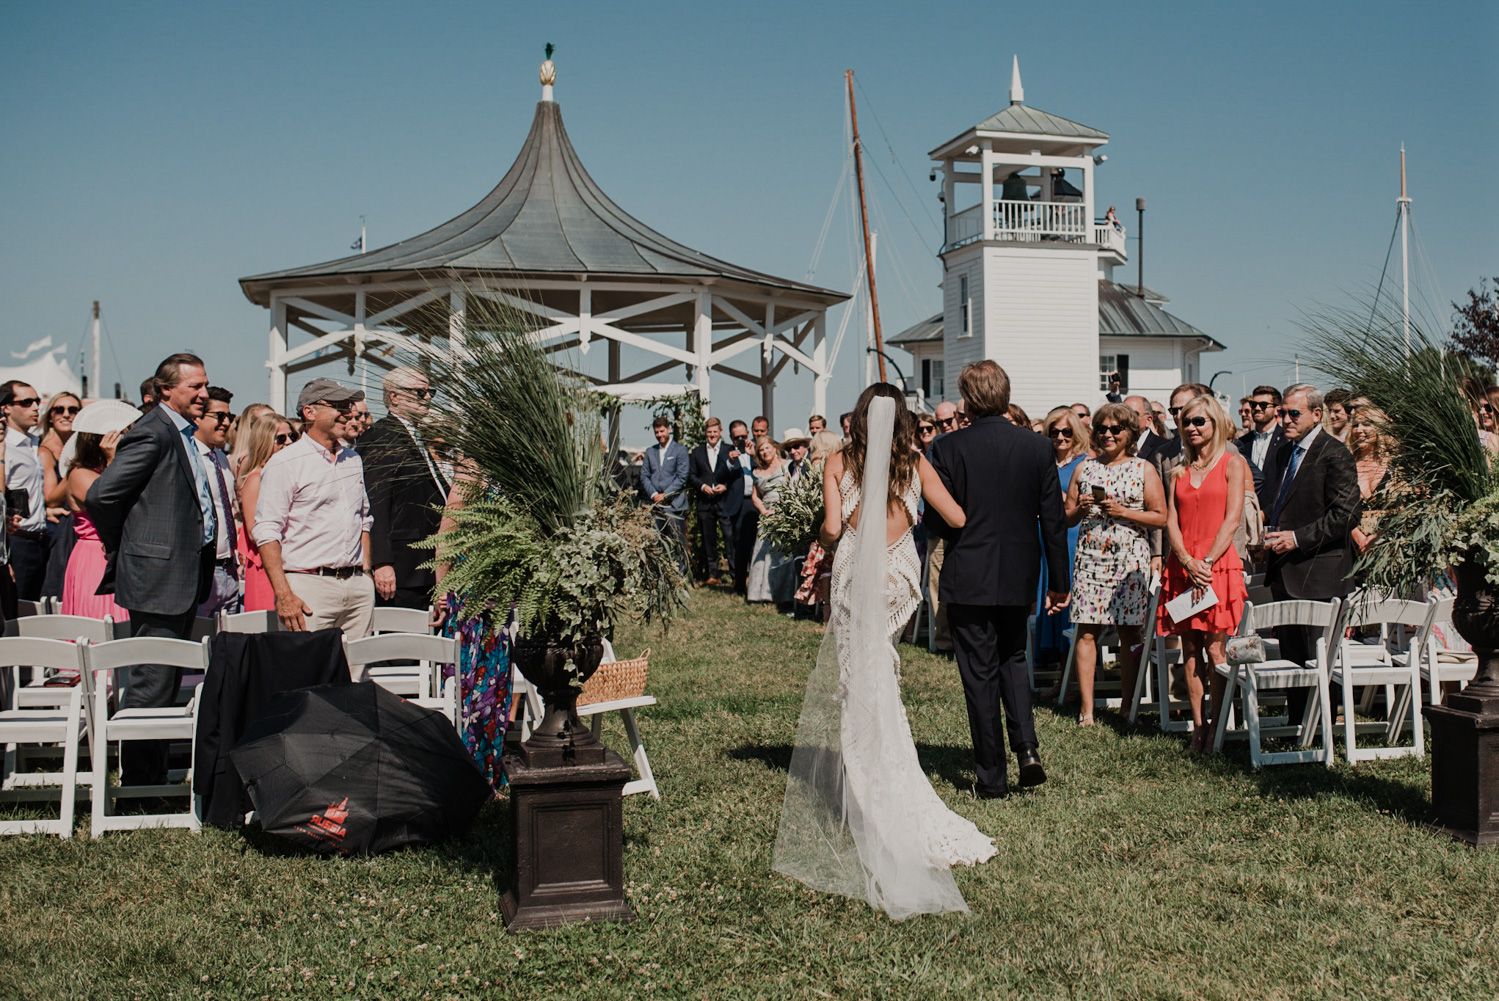 bride and her father walk down the aisle with all of the guests and the groom in the background